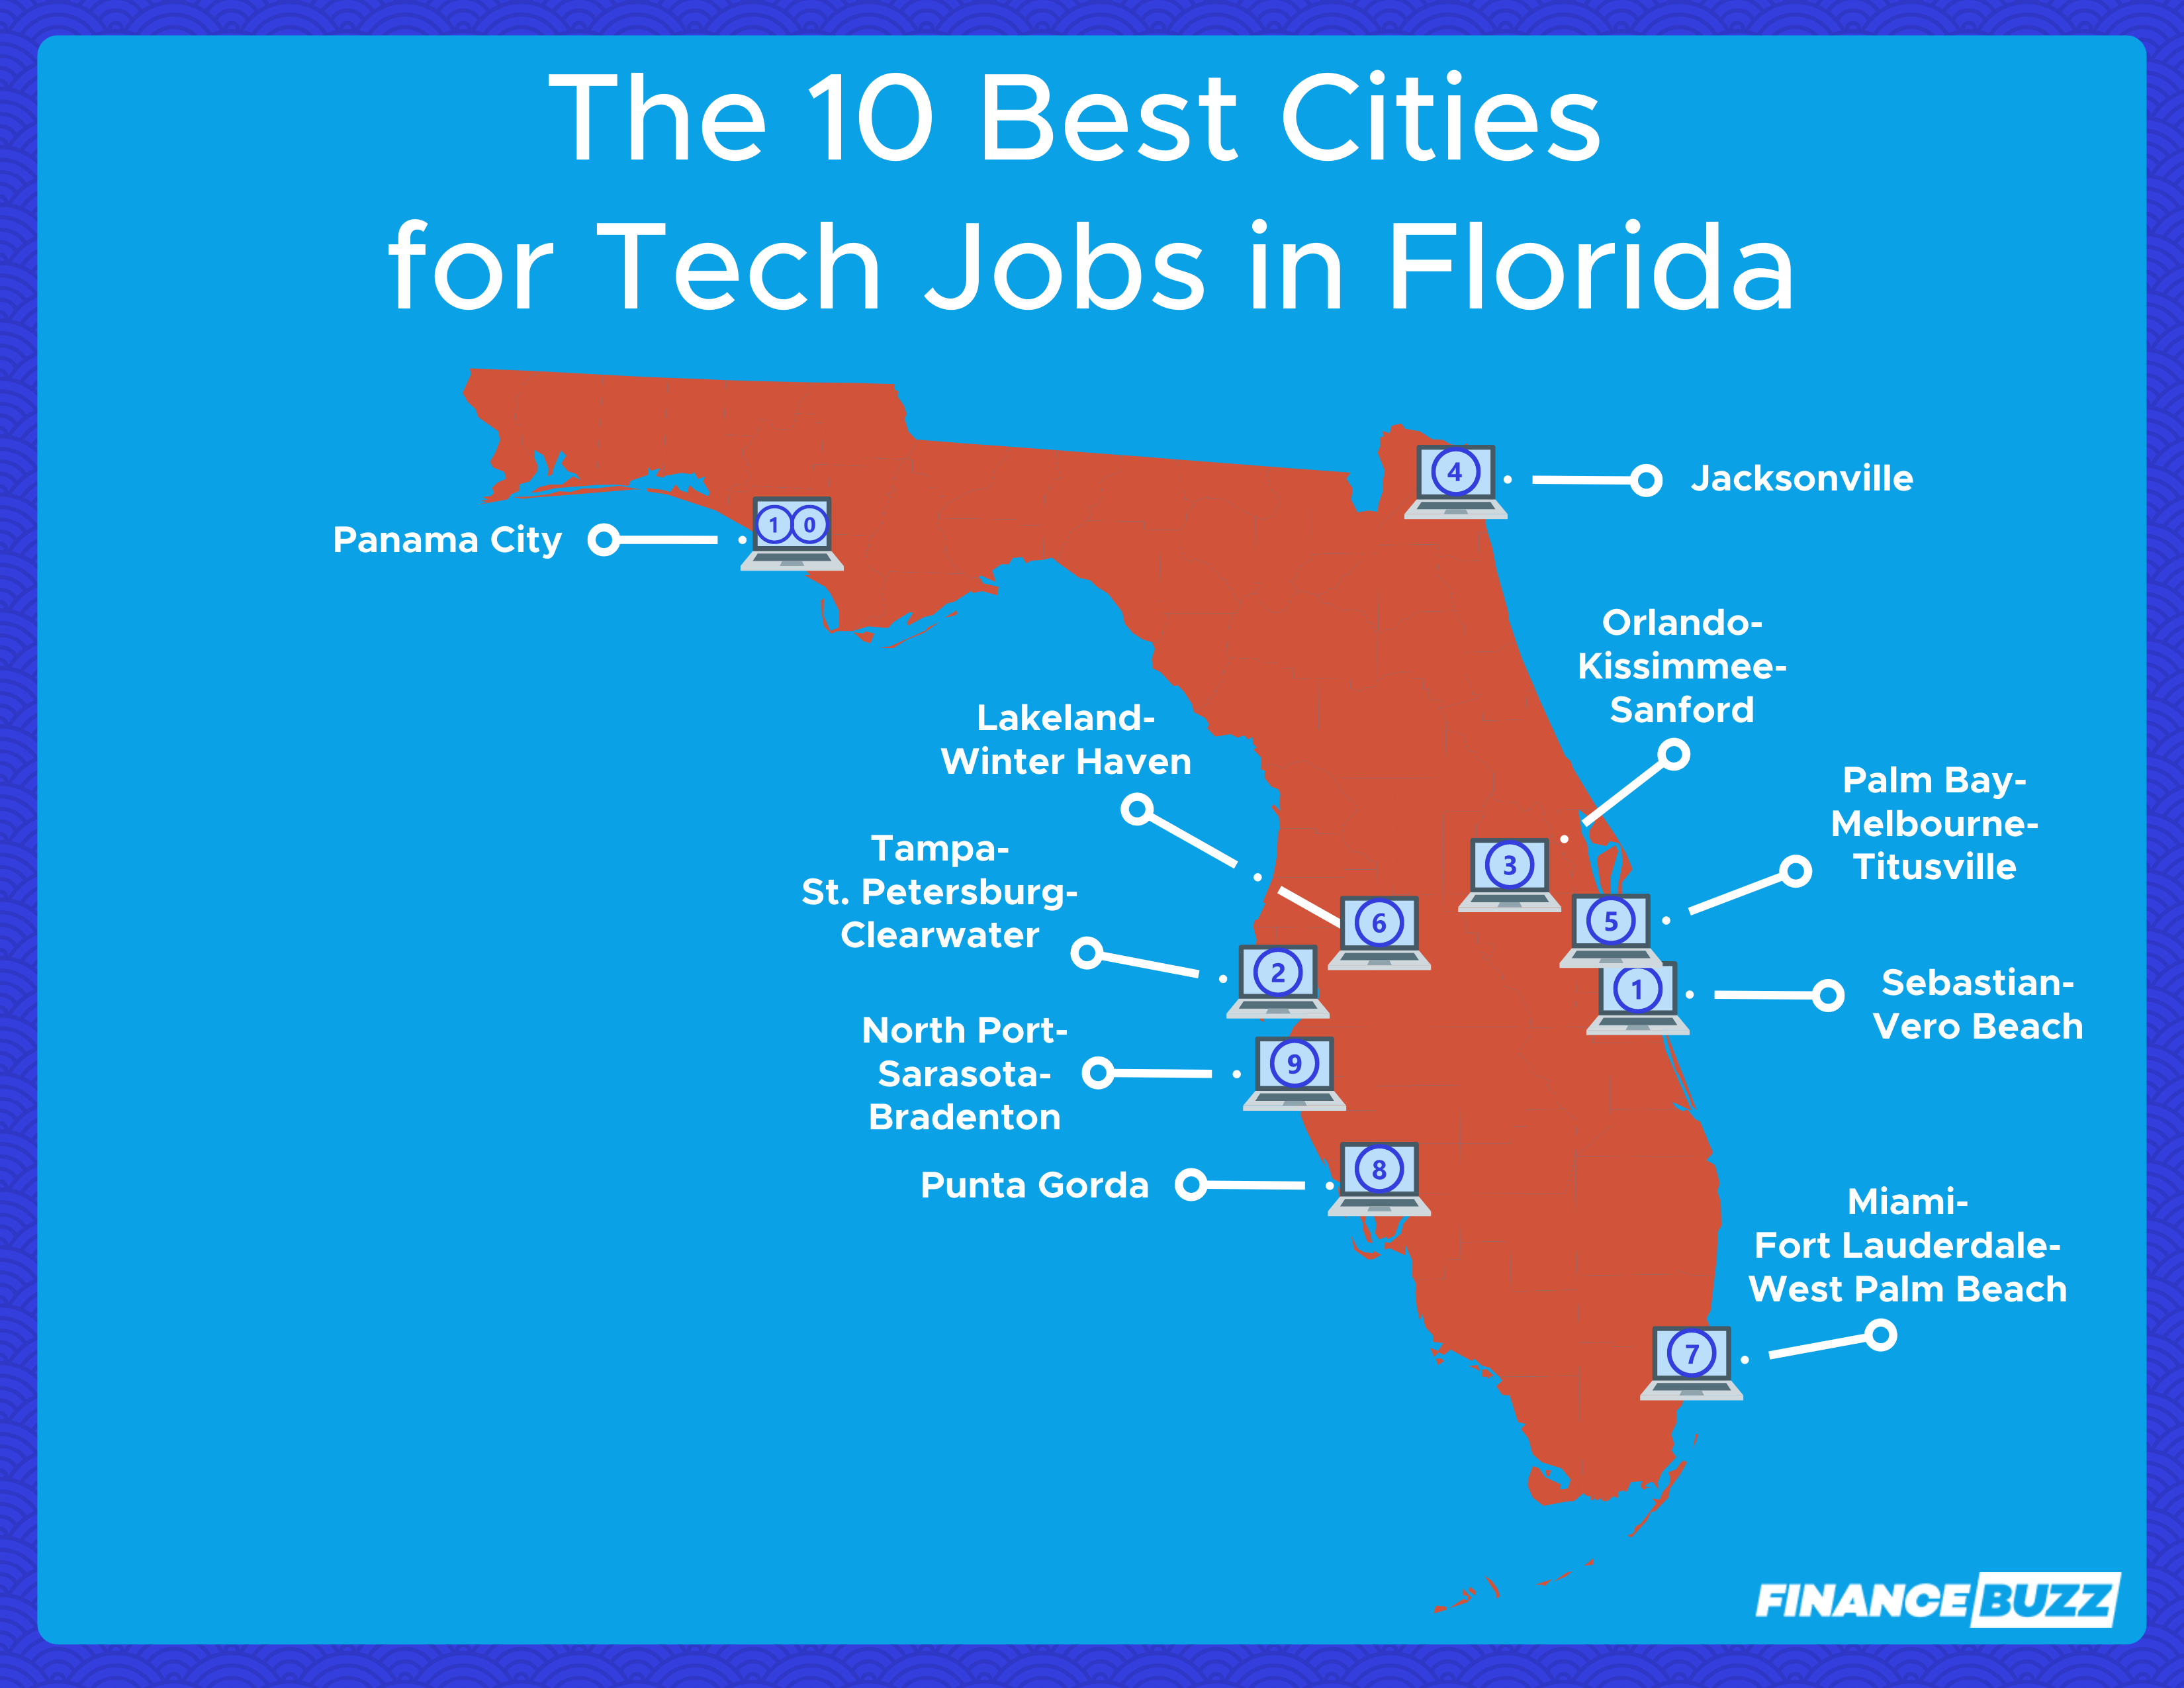 Map of the 10 best cities for tech jobs in the state of Florida